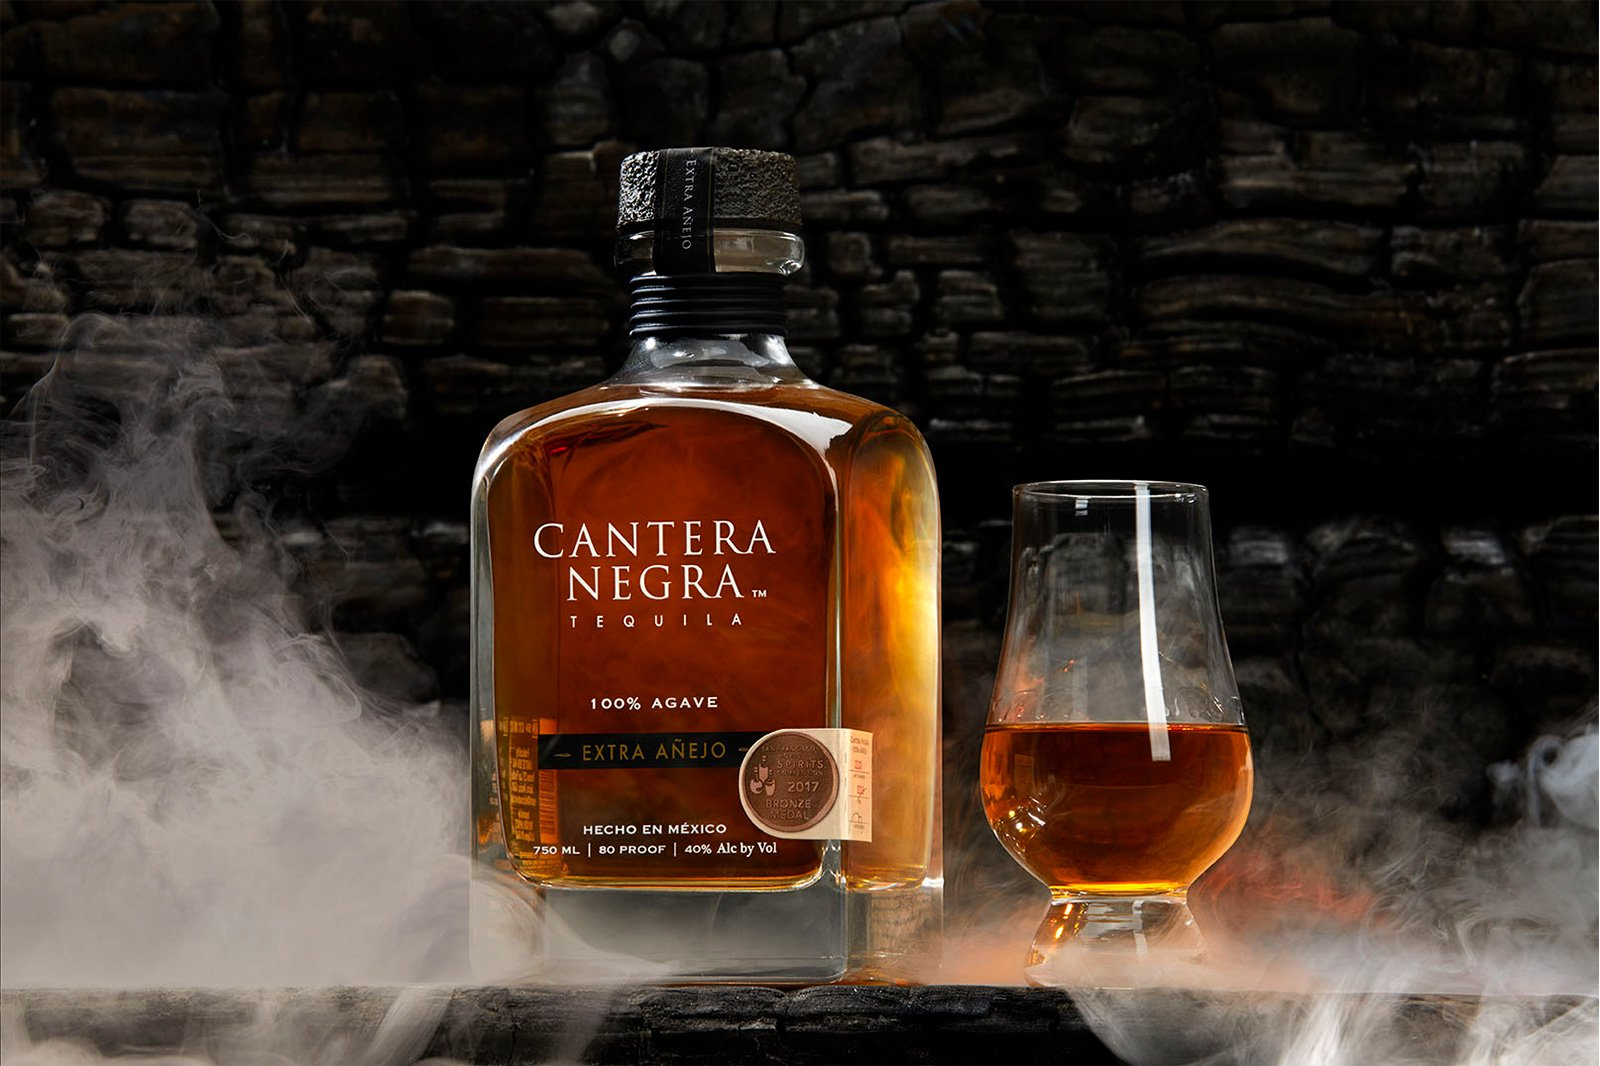 A cantera negra bottle with smoke after retouching